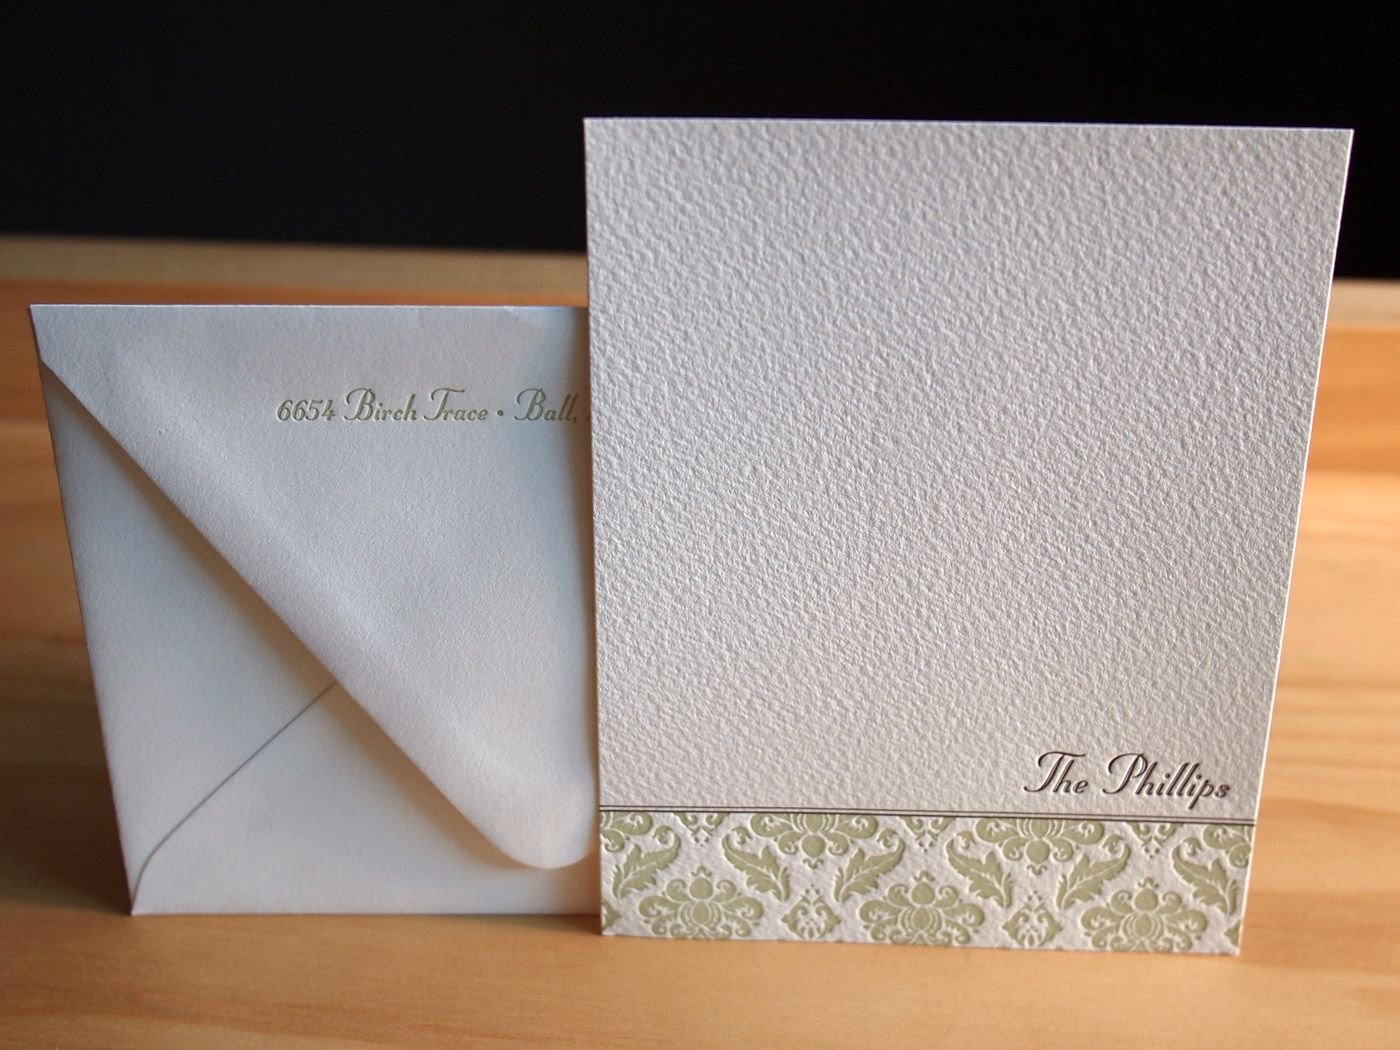 Personalized Stationery from Parklife Press